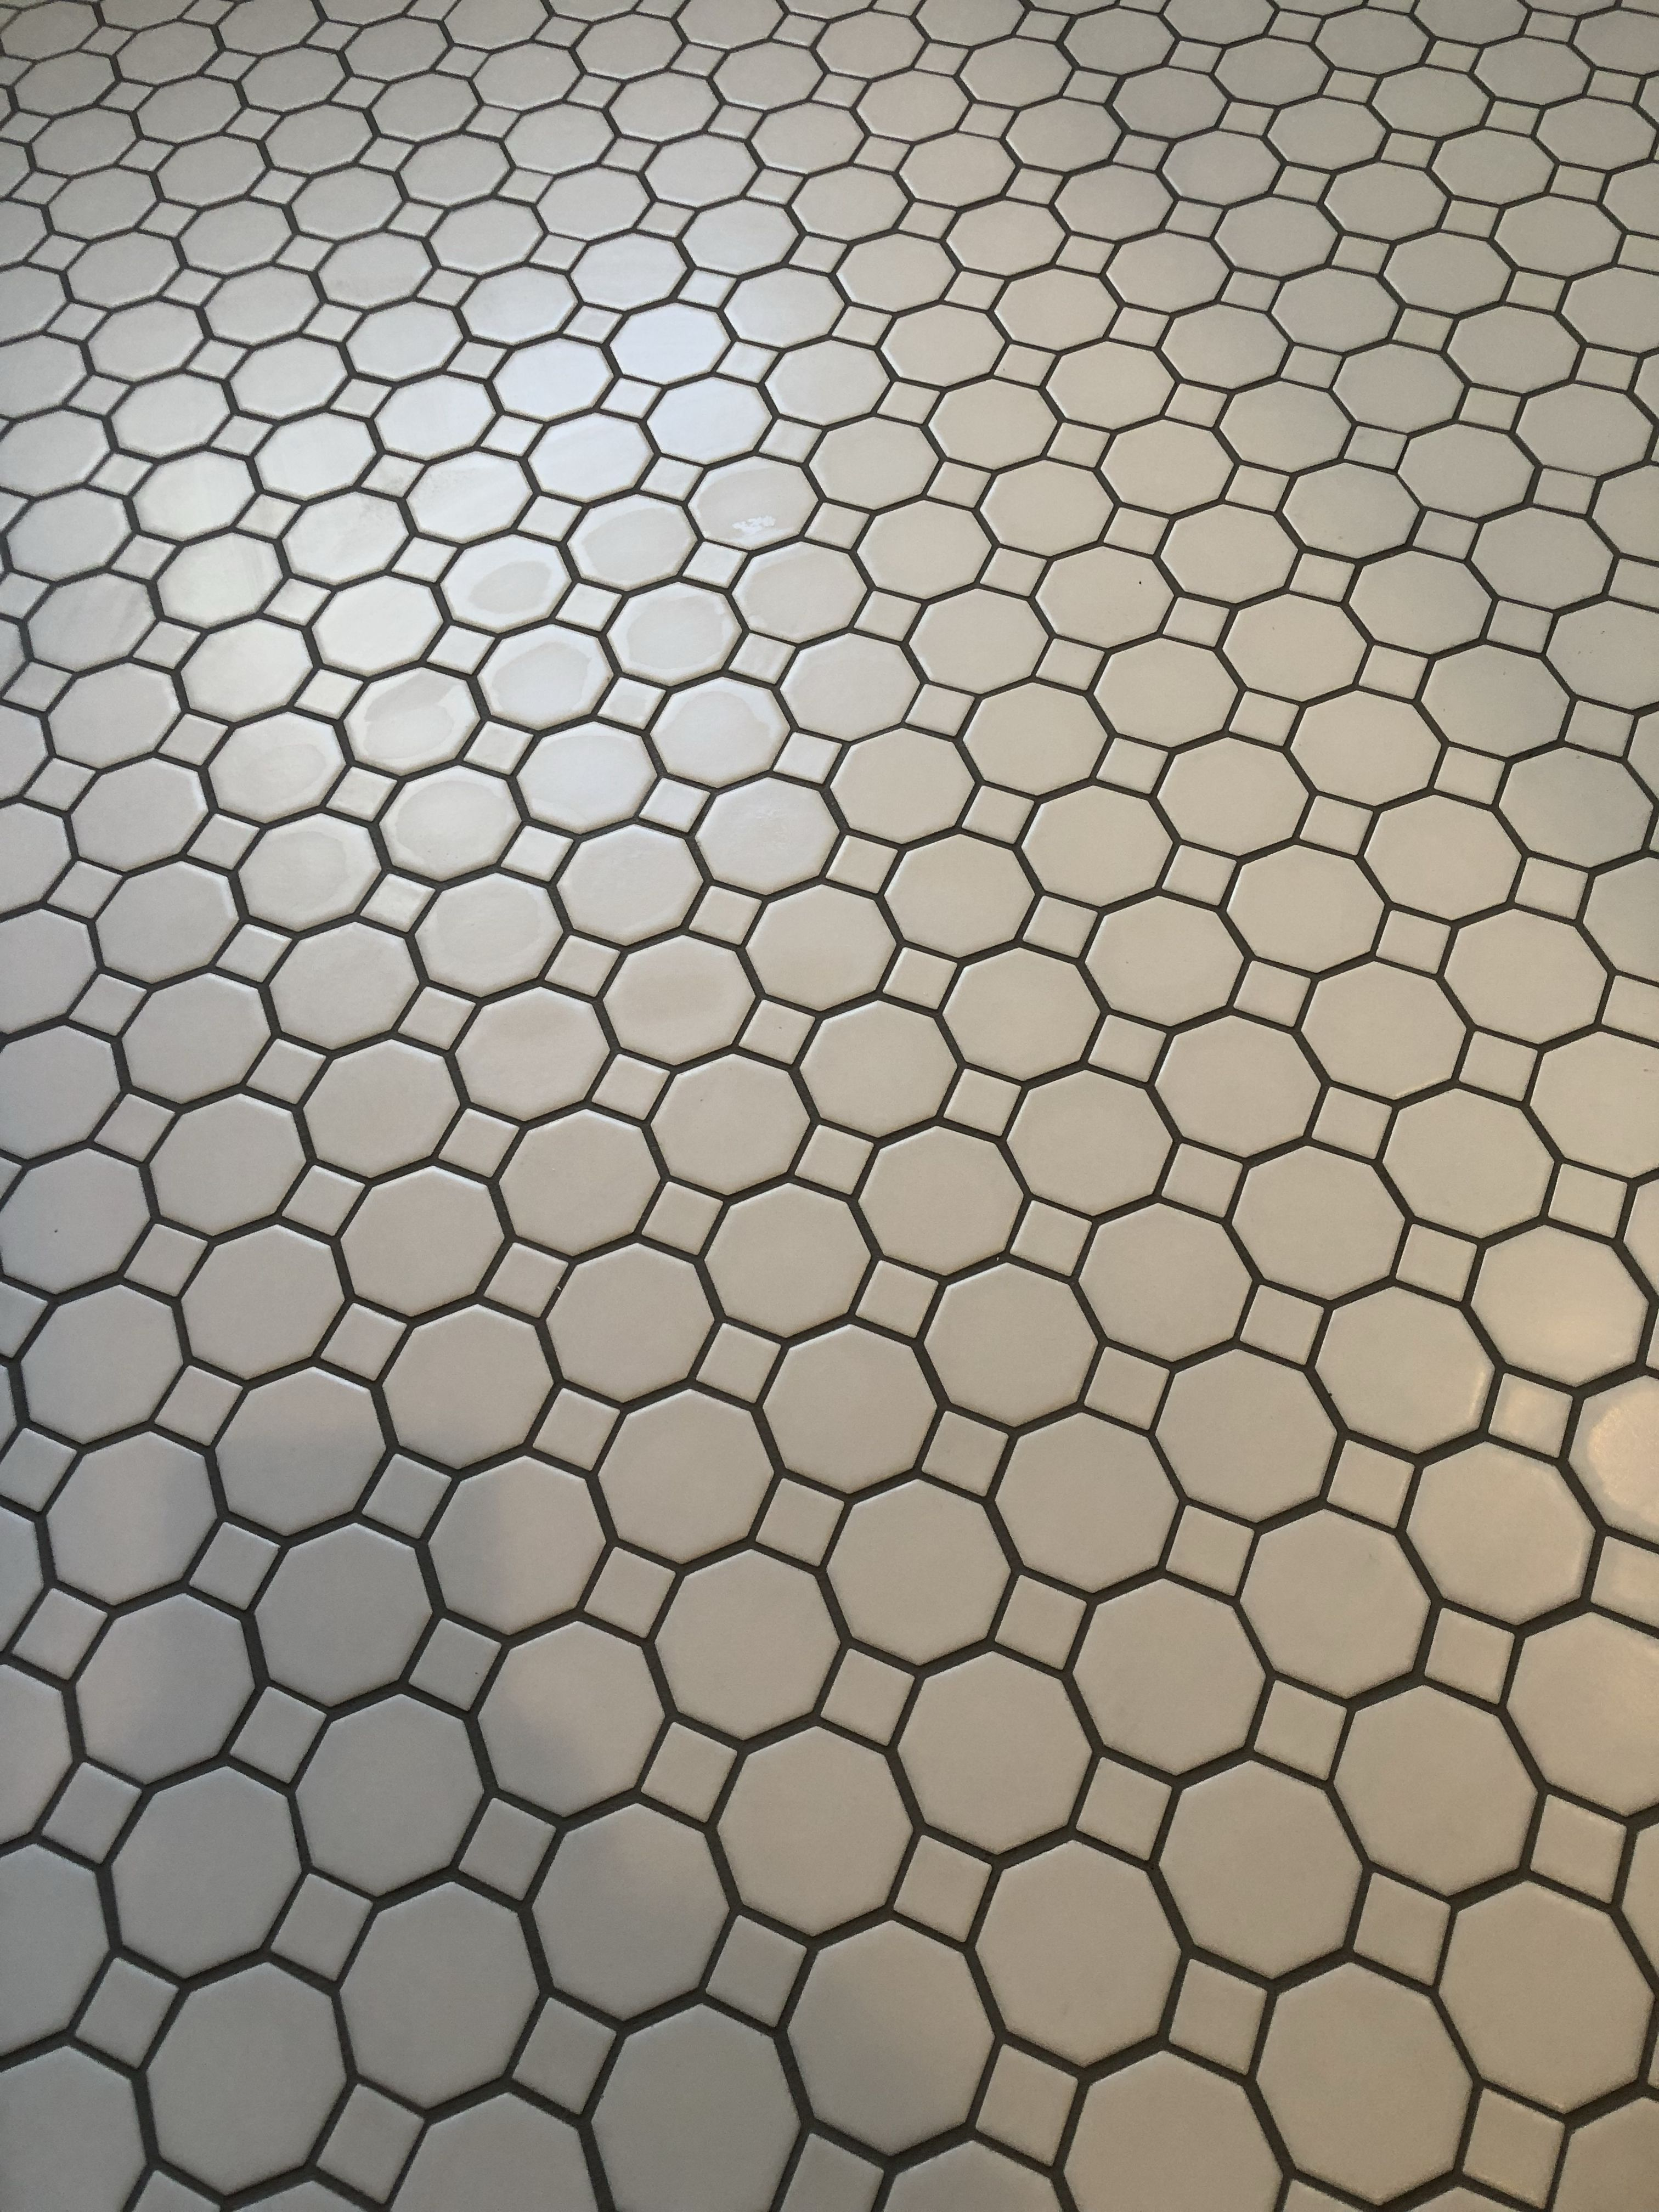 White Porcelain Hex Tile With Silver Gray Grout Powder